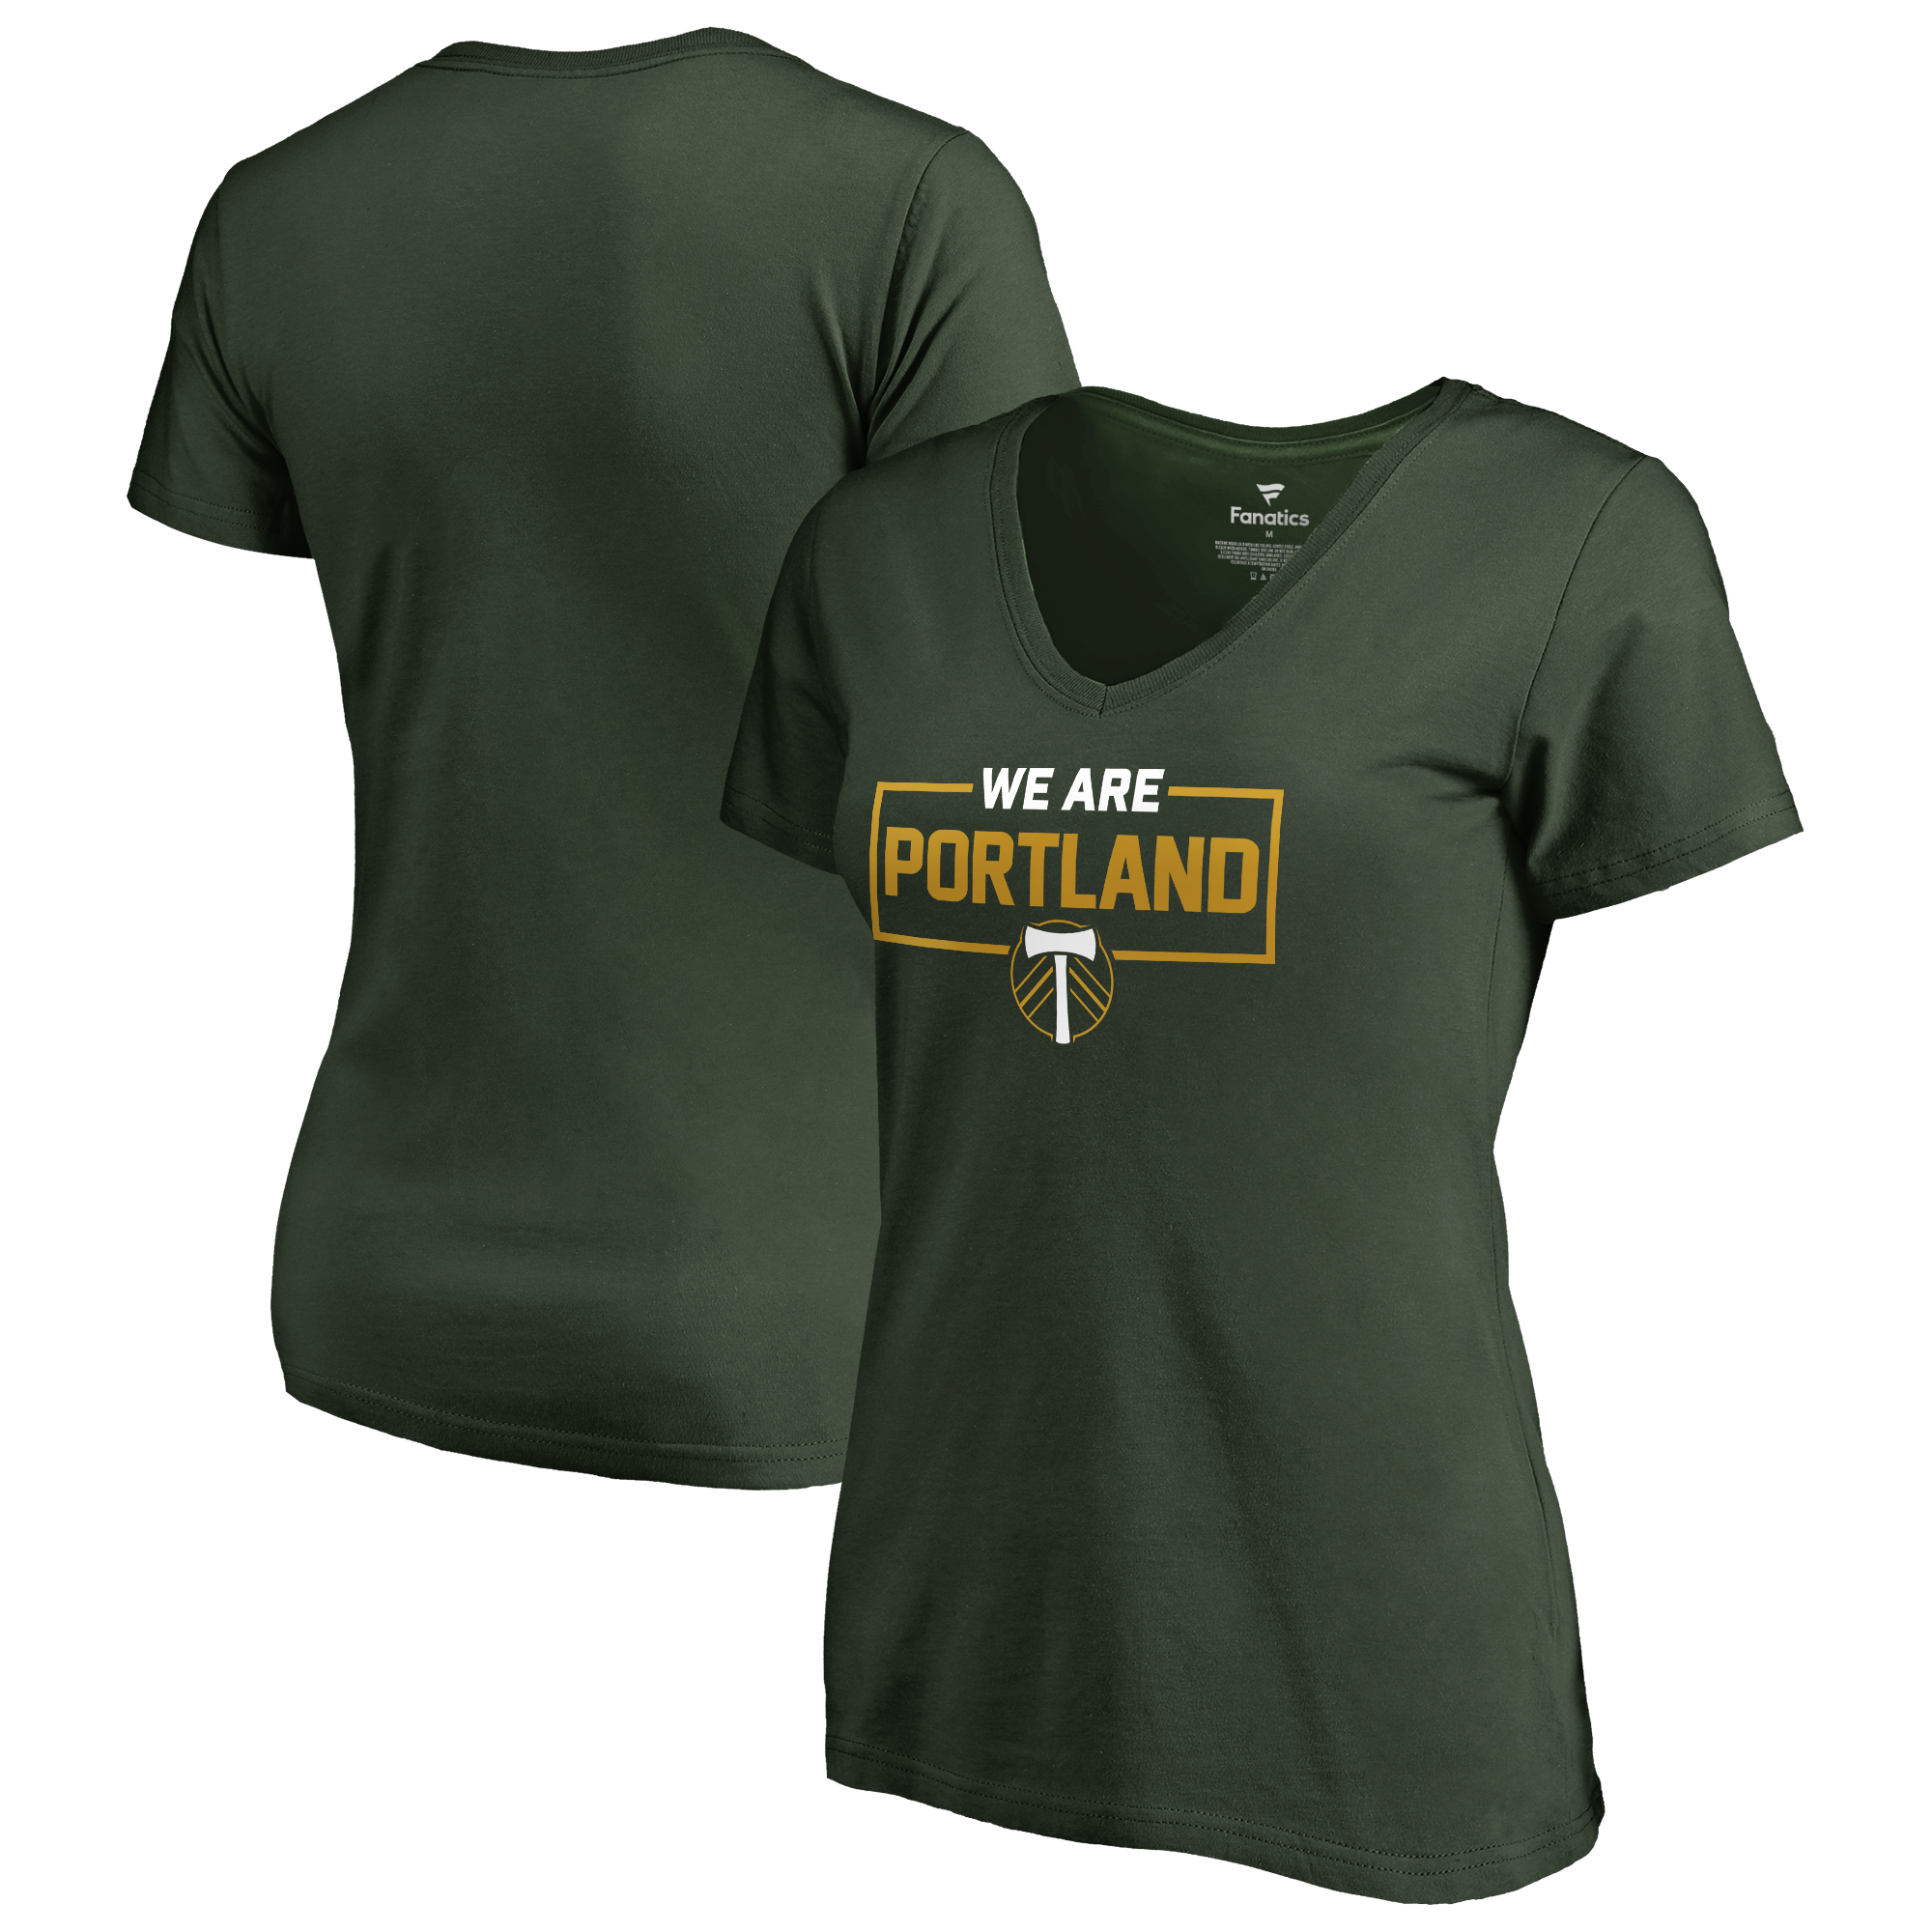 Portland Timbers Fanatics Branded Women's Plus Size We Are V-Neck T-Shirt - Green